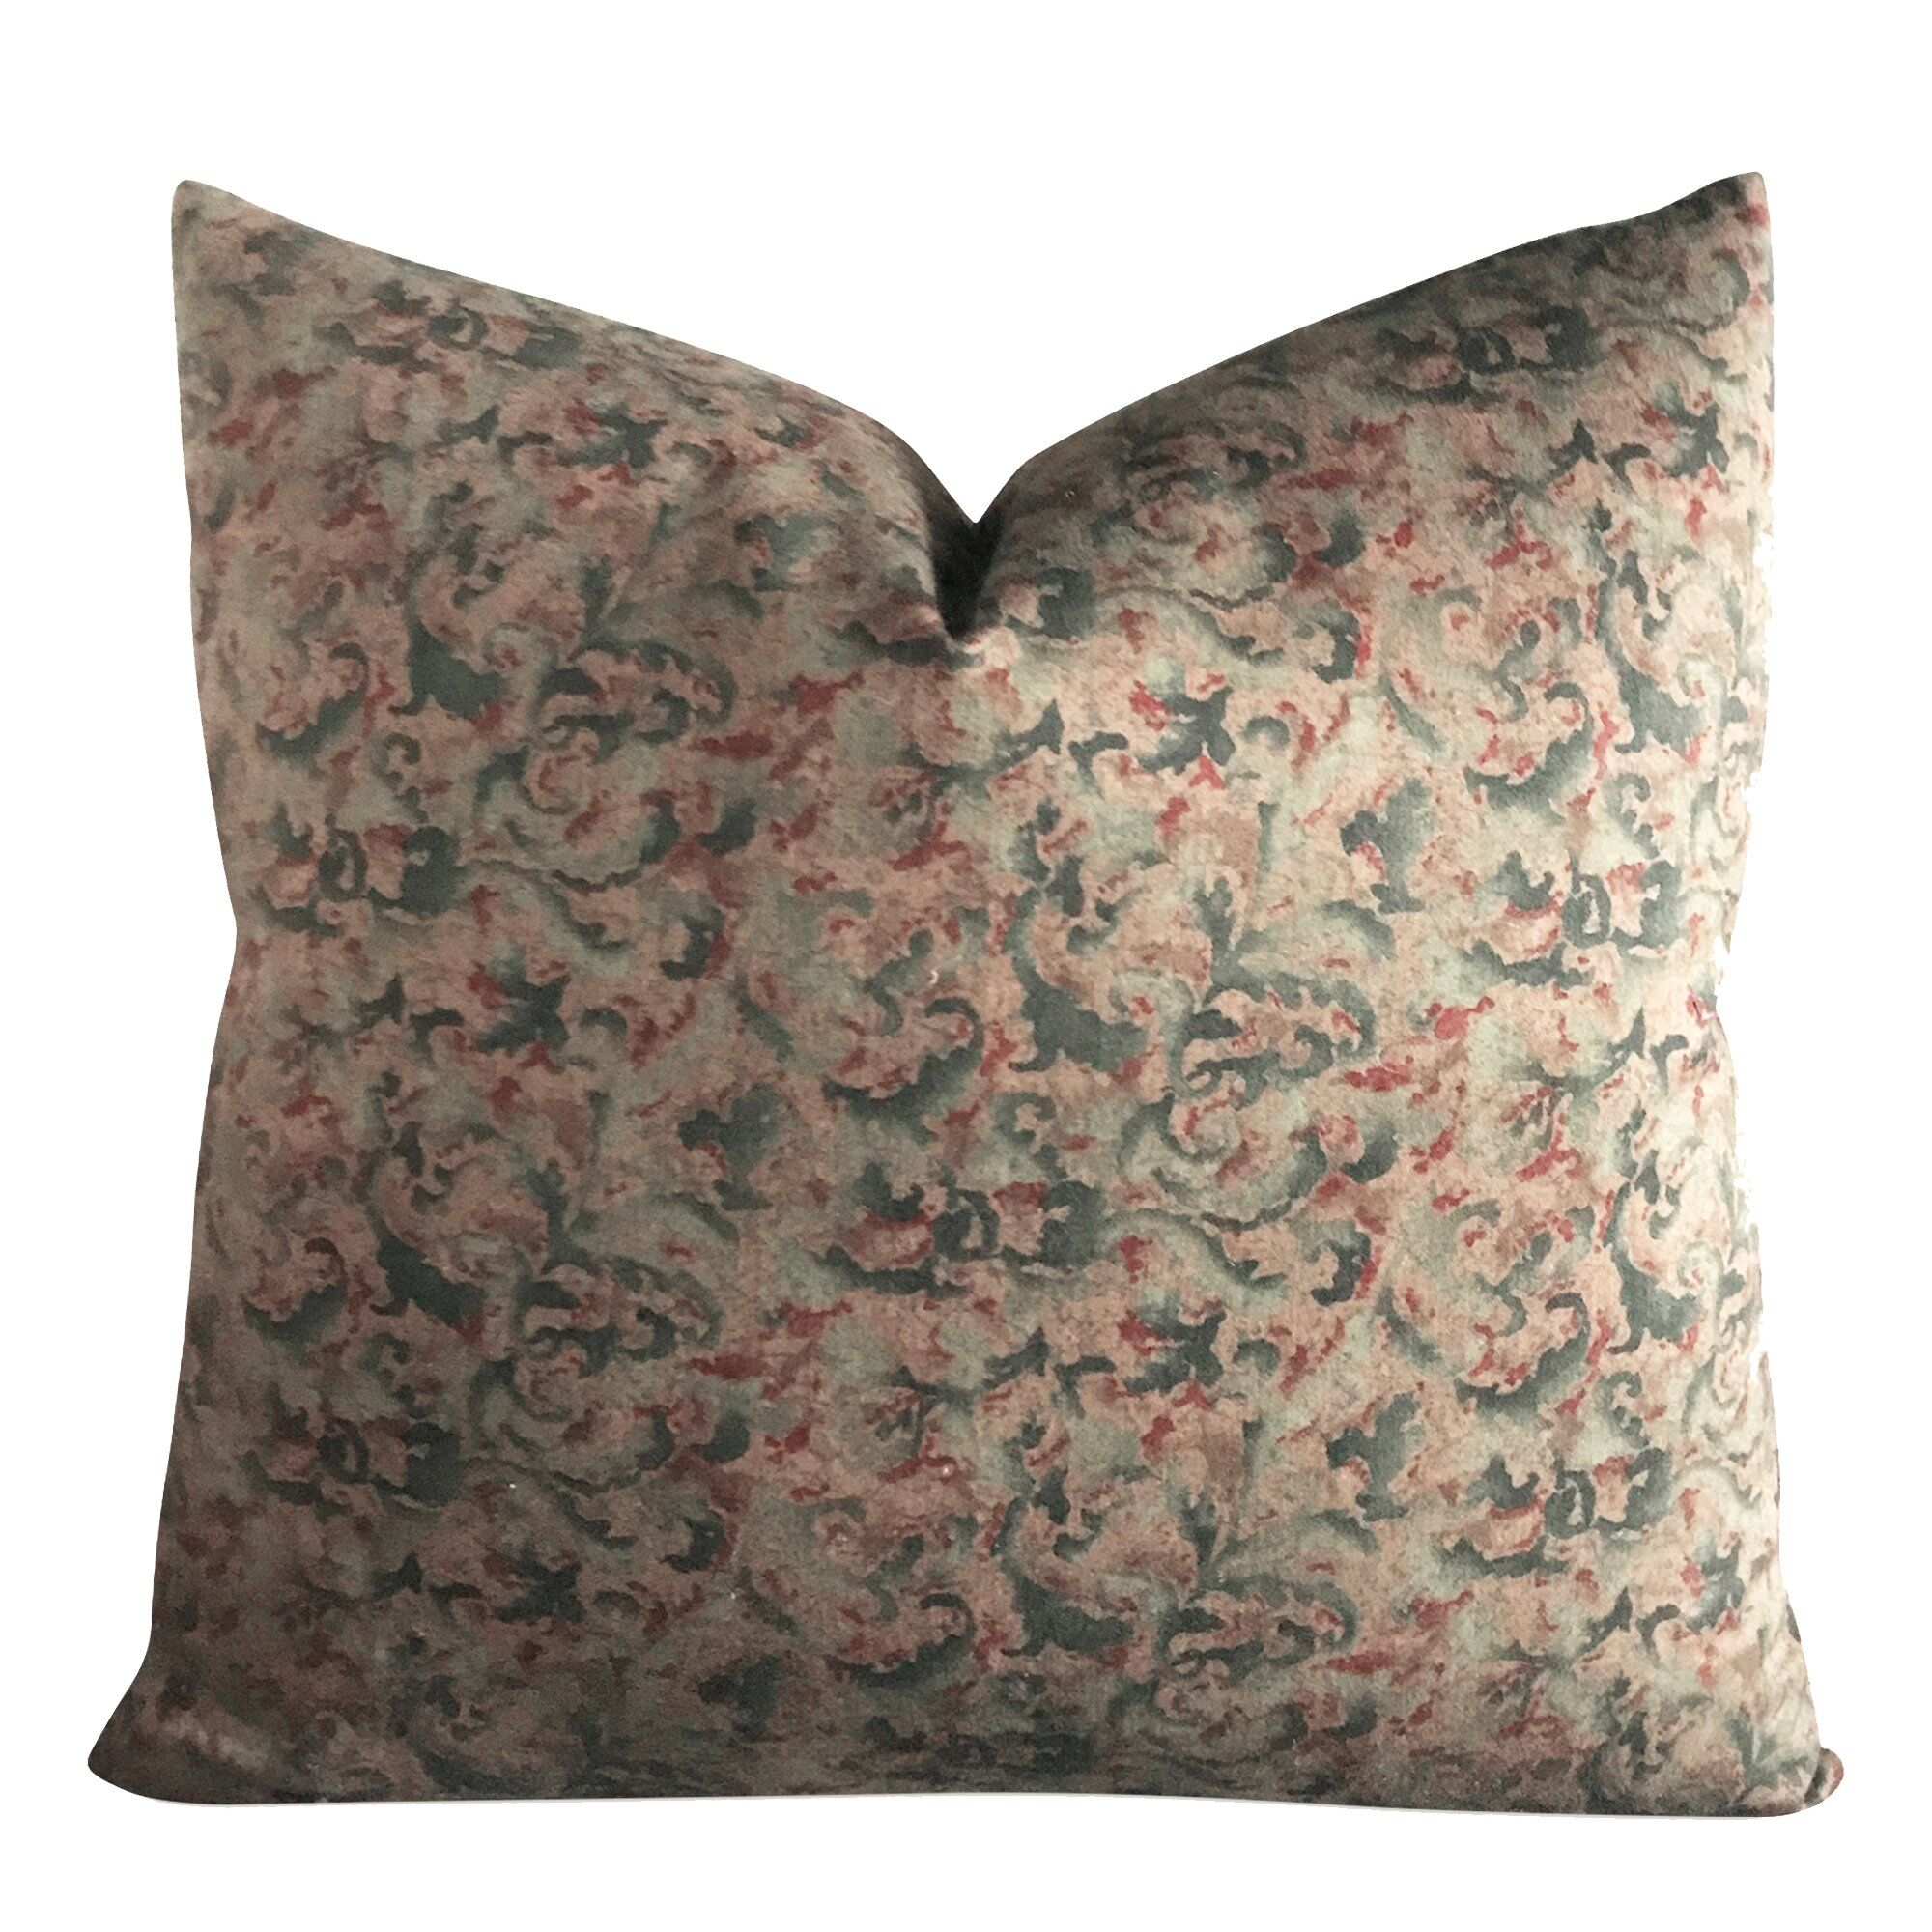 Chairez Fall Colorblend Artistic Decorative Pillow Cover